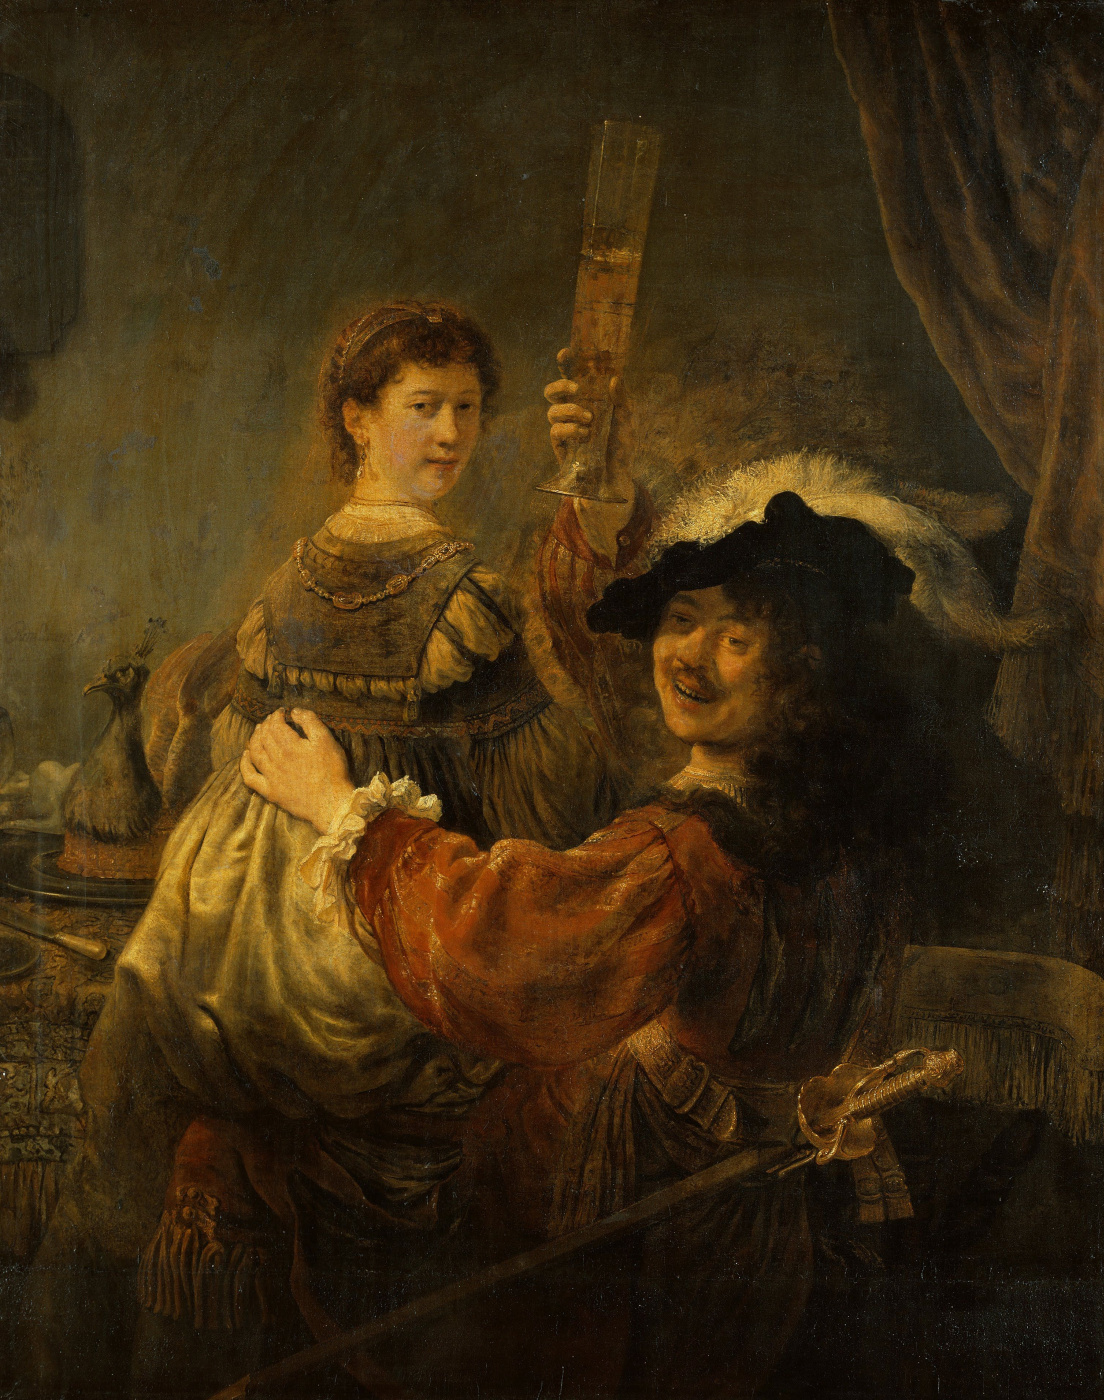 Rembrandt Harmenszoon van Rijn. The Prodigal Son in the Tavern (Self Portrait with Saskia on her Lap)